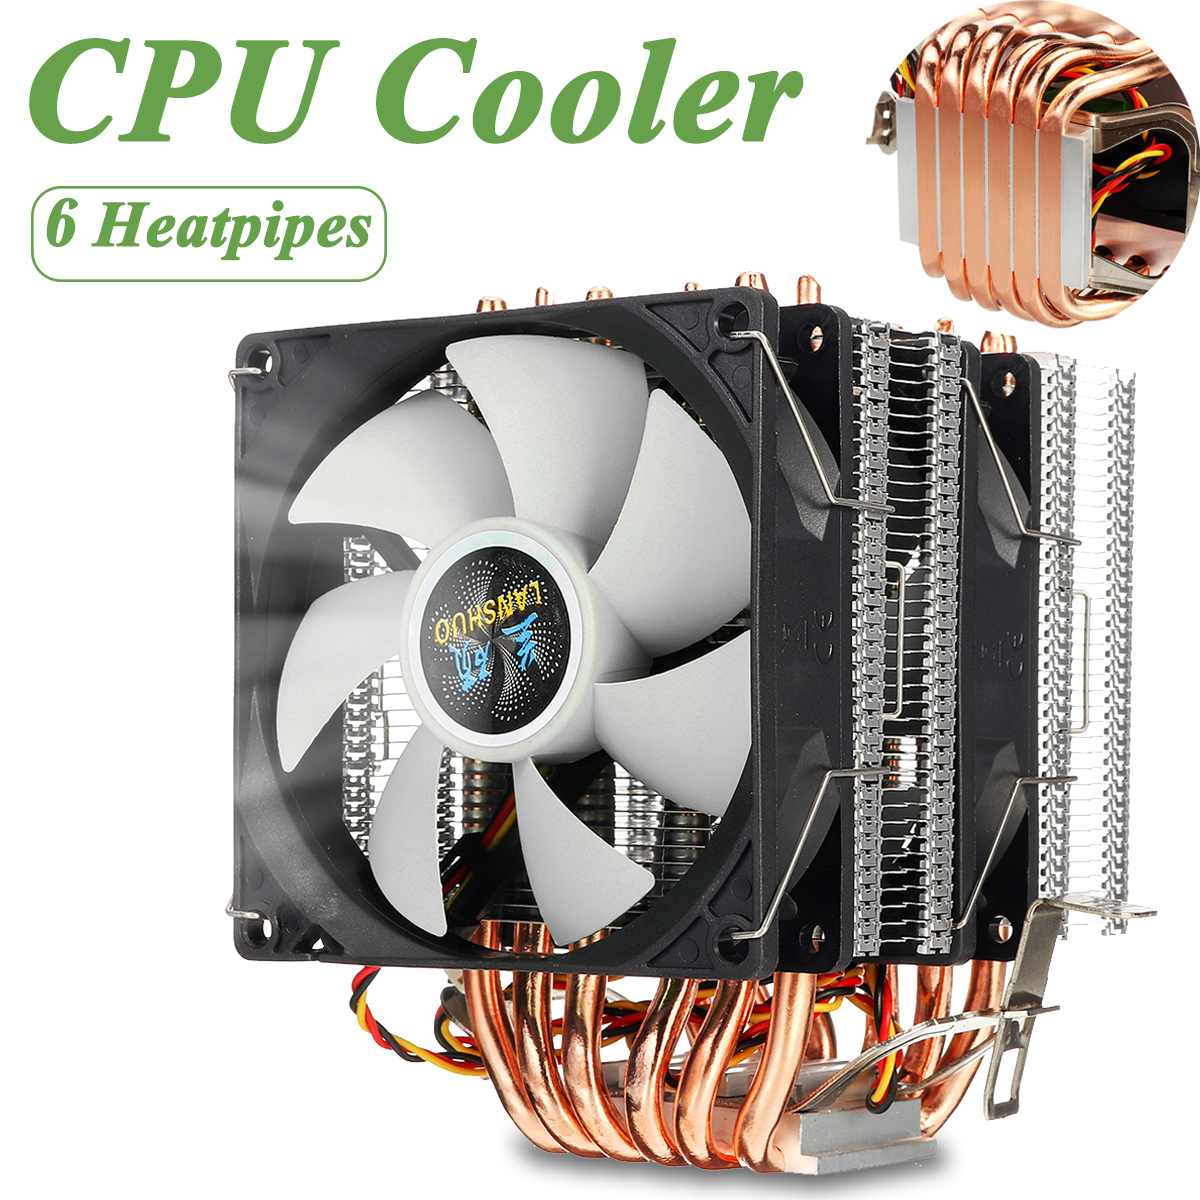 6 Heat Pipes CPU Cooler Dual-side Fan Cooler Quiet Cooling Fan Heatsink Radiator for LGA 1150/1151/1155/1156/1366/775 for AMD image